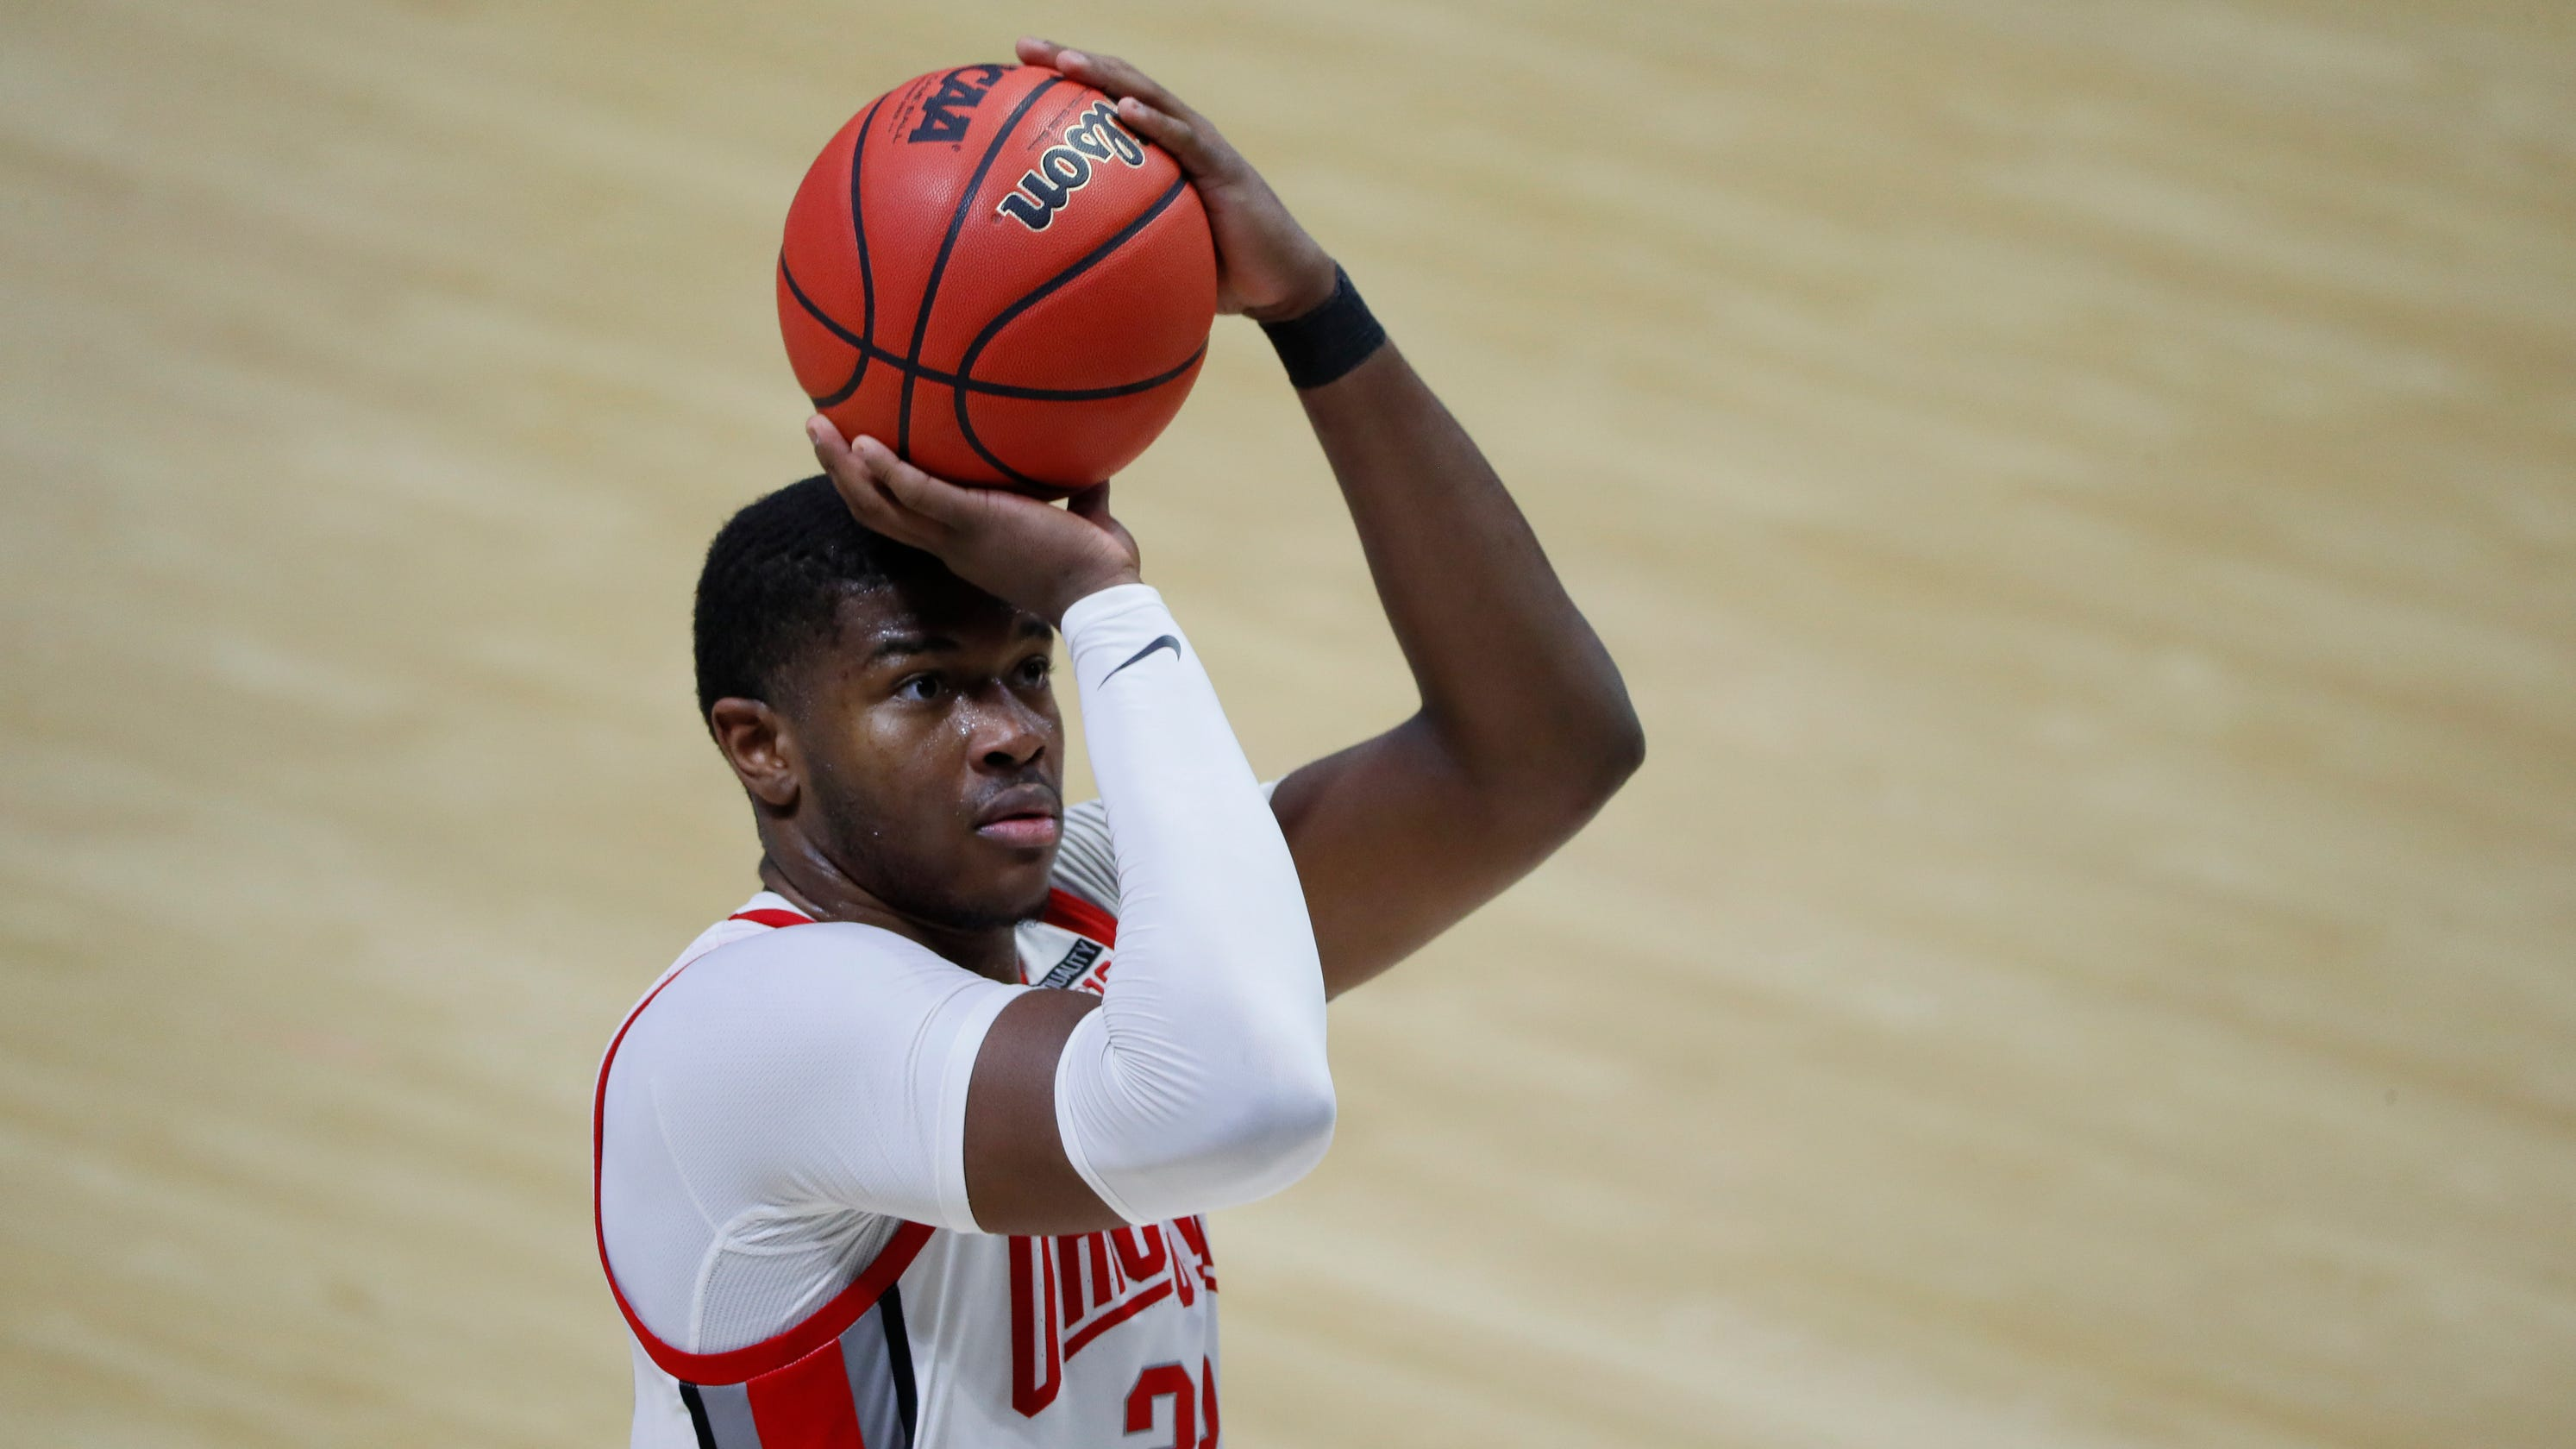 Ohio State's E.J. Liddell shares threats vulgar insults received after Oral Roberts loss – USA TODAY